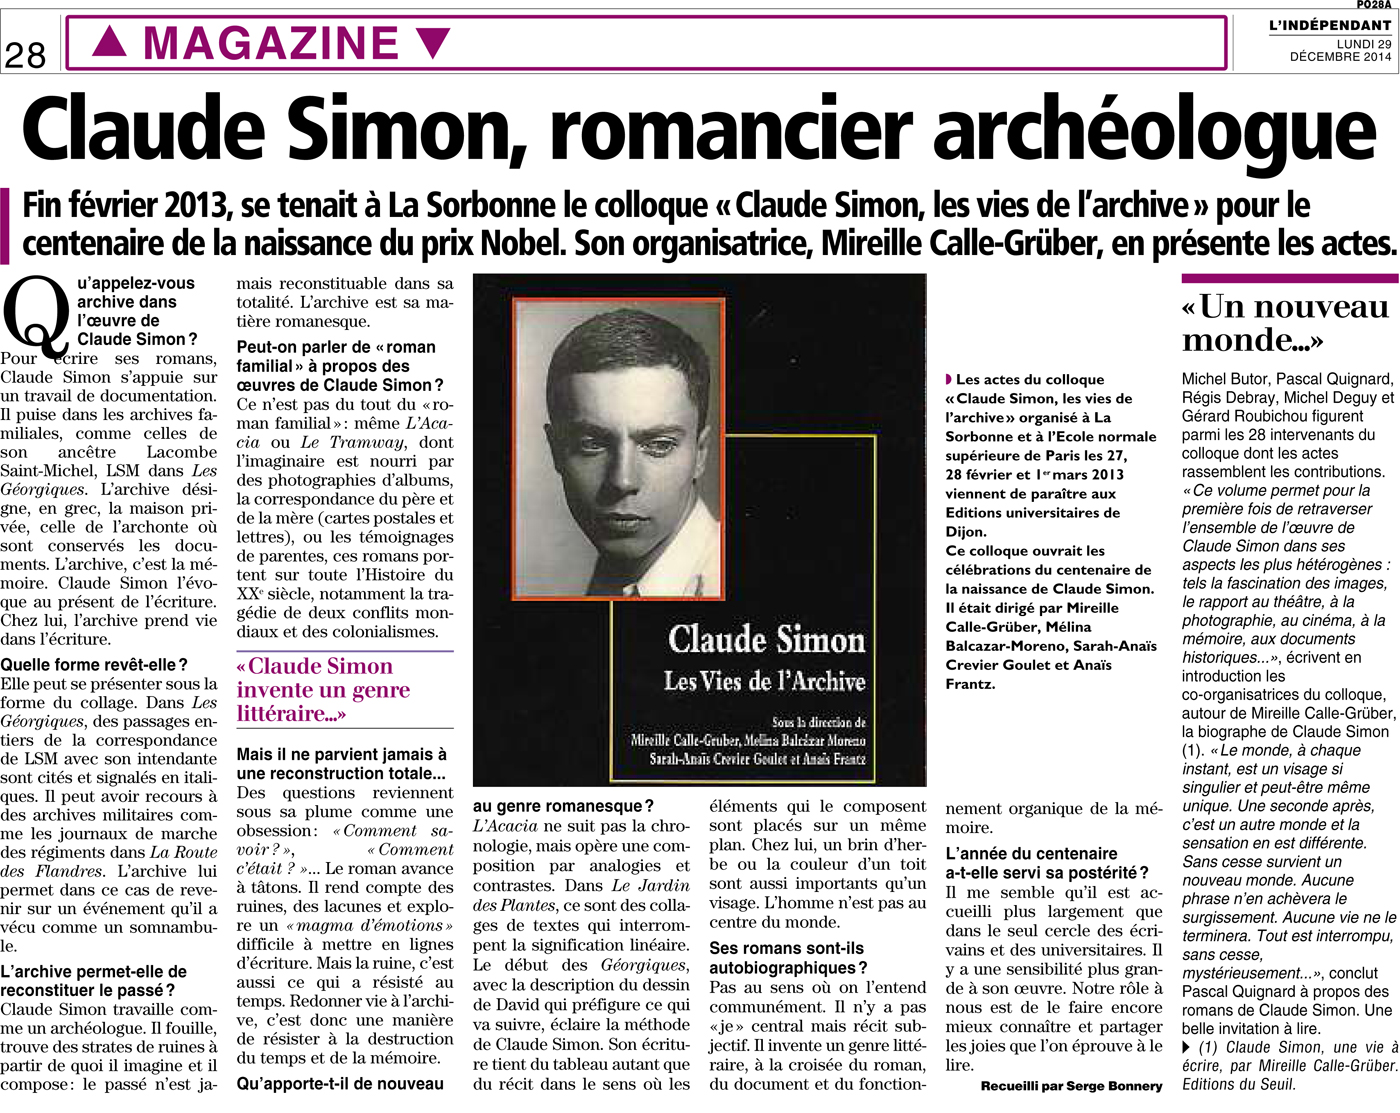 Claude Simon, romancier archéologue